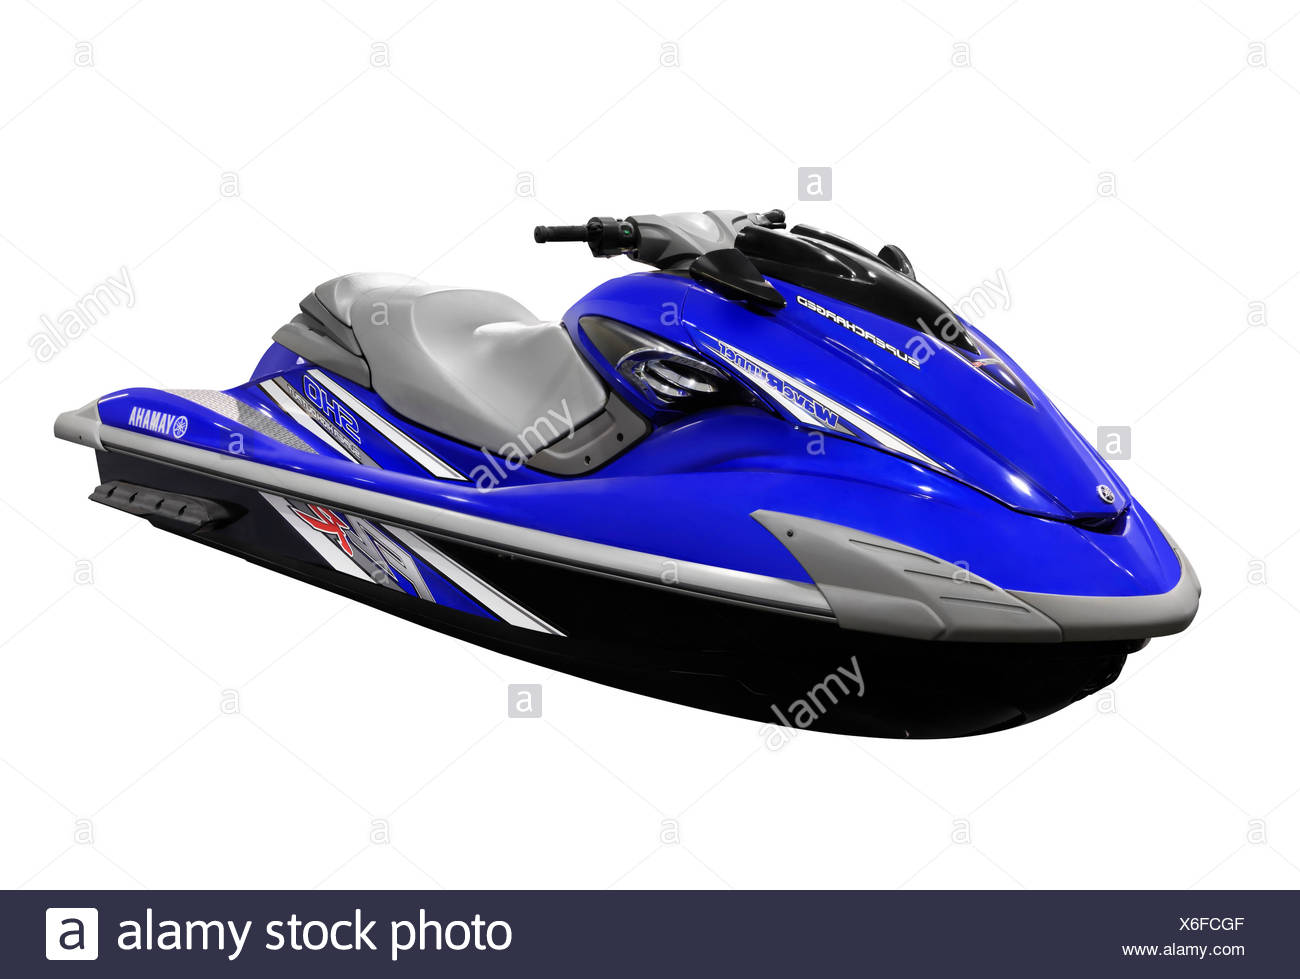 Yamaha WaveRunner SHO Supercharged, personal water craft PWC water